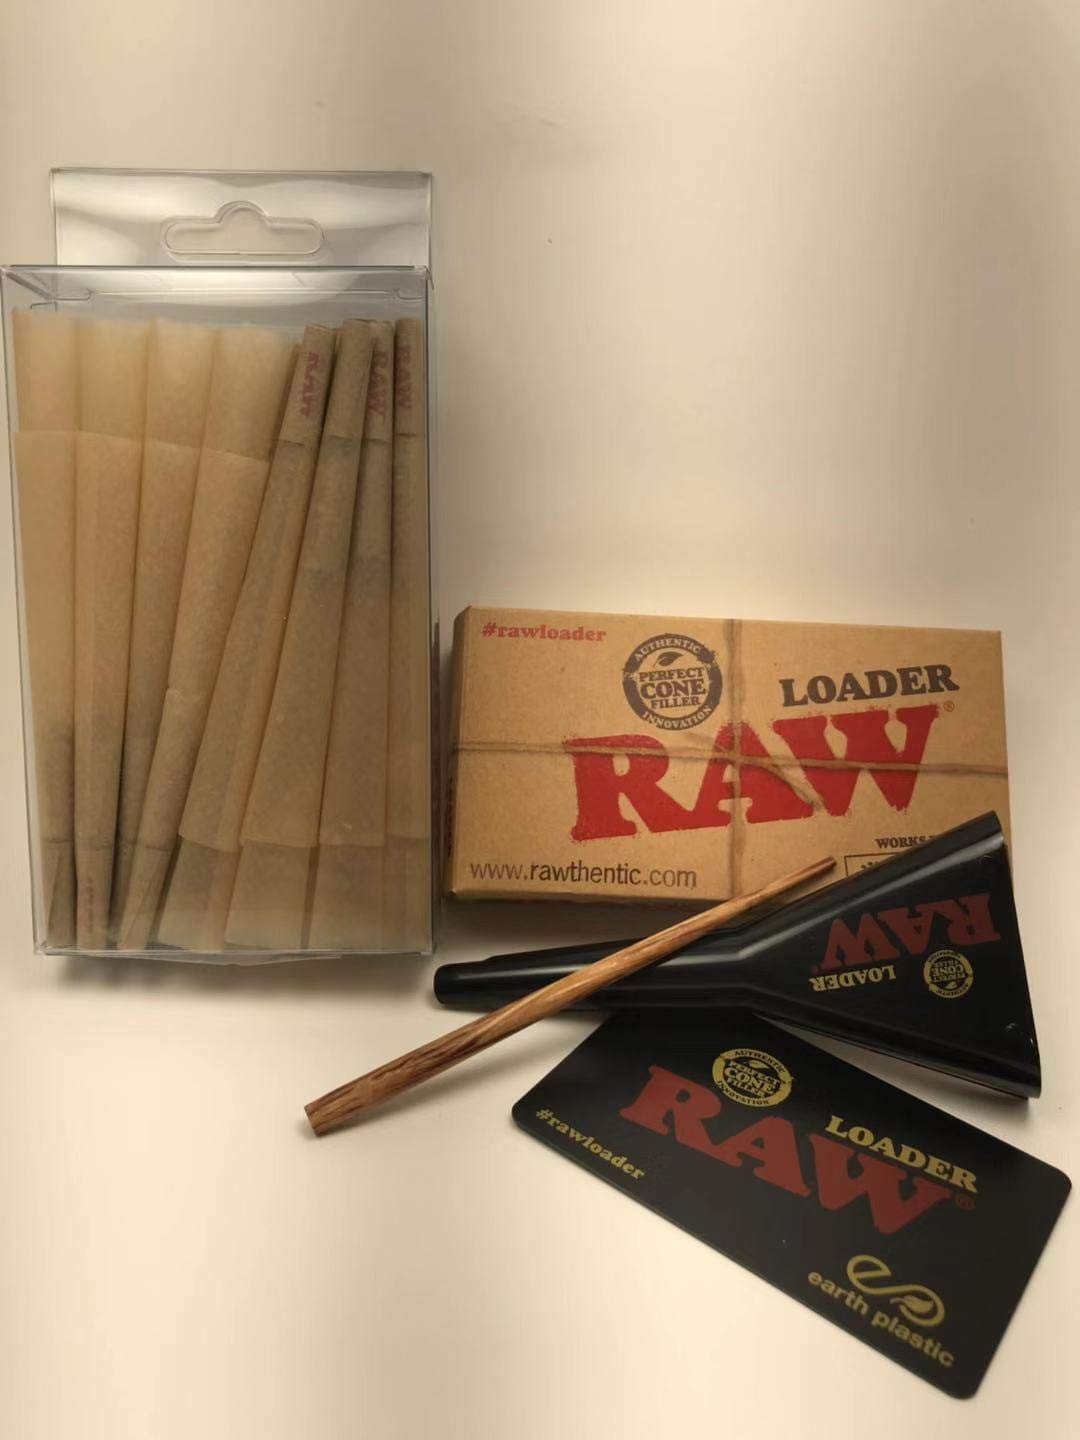 661a6542f10 Amazon.com  RAW Classic 98 Special Size pre Rolled Cone with Filter tip (50  Cones) +RAW Cone Loader Sale  18.99. Free Fast DELIVERY 3-4 Days.